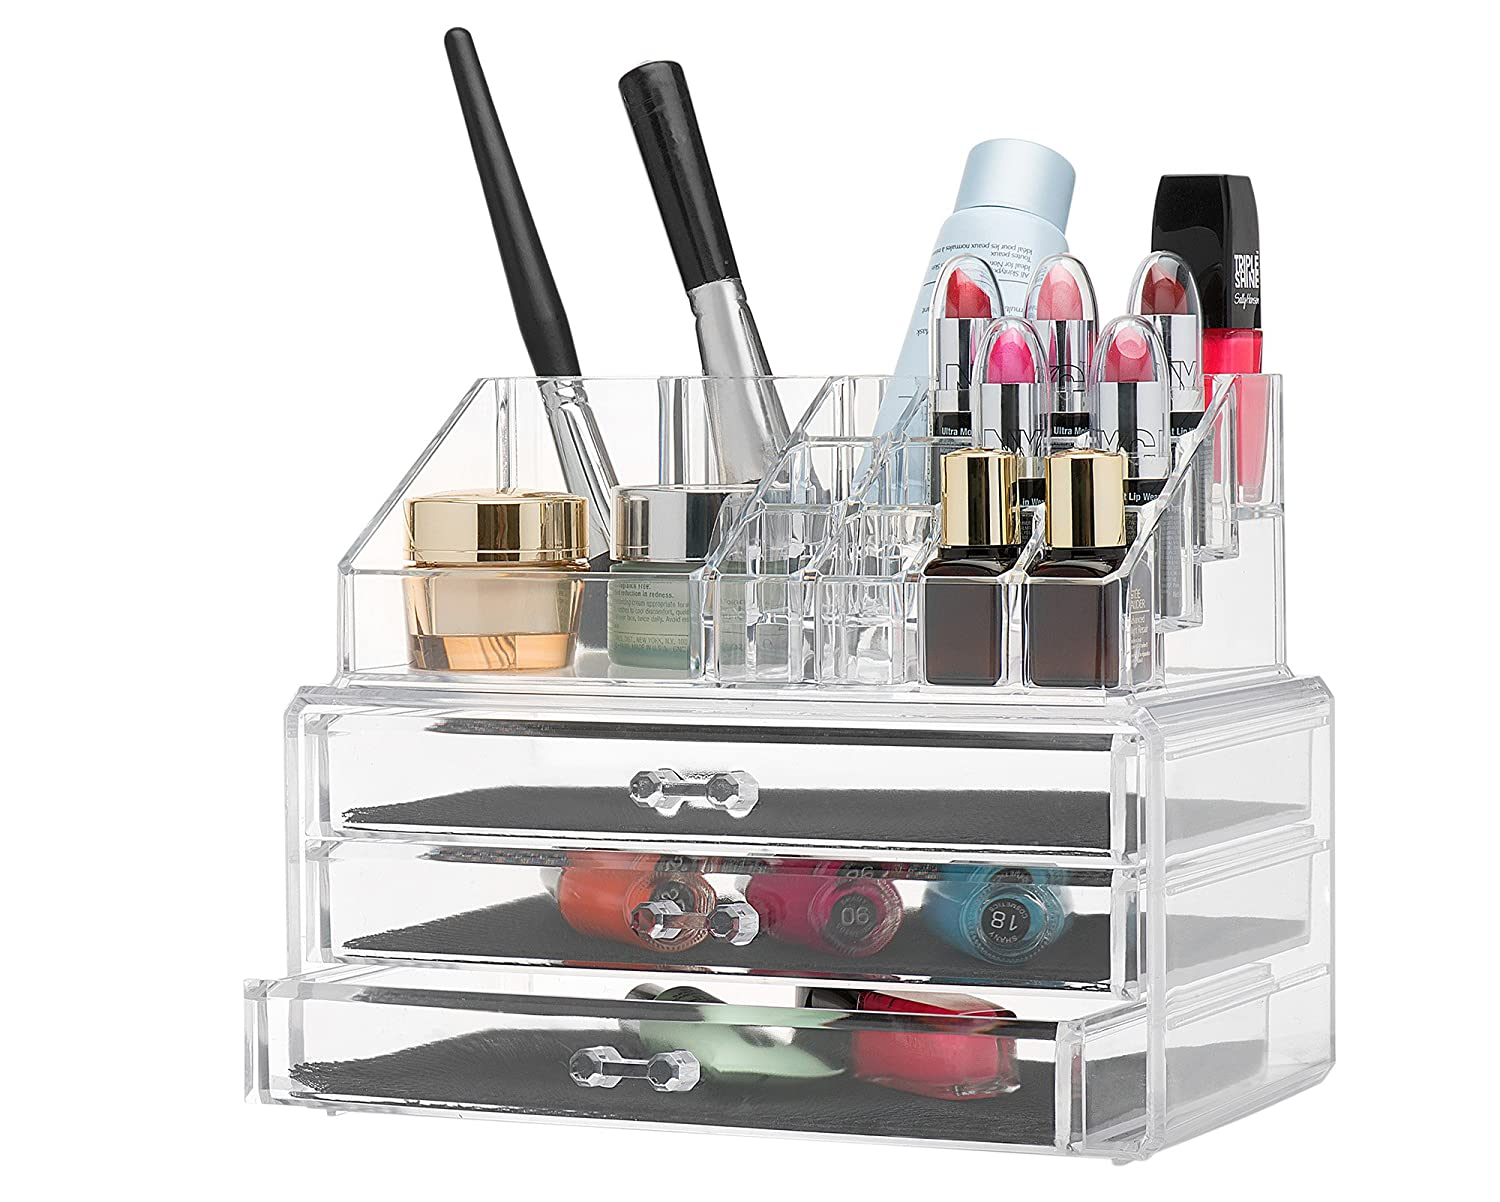 Jewelry organizer and makeup organizer cosmetic organizer and Large 3 Drawer Jewelry Chest or makeup storage ideas Case Lipstick Liner Brush Holder make up boxes